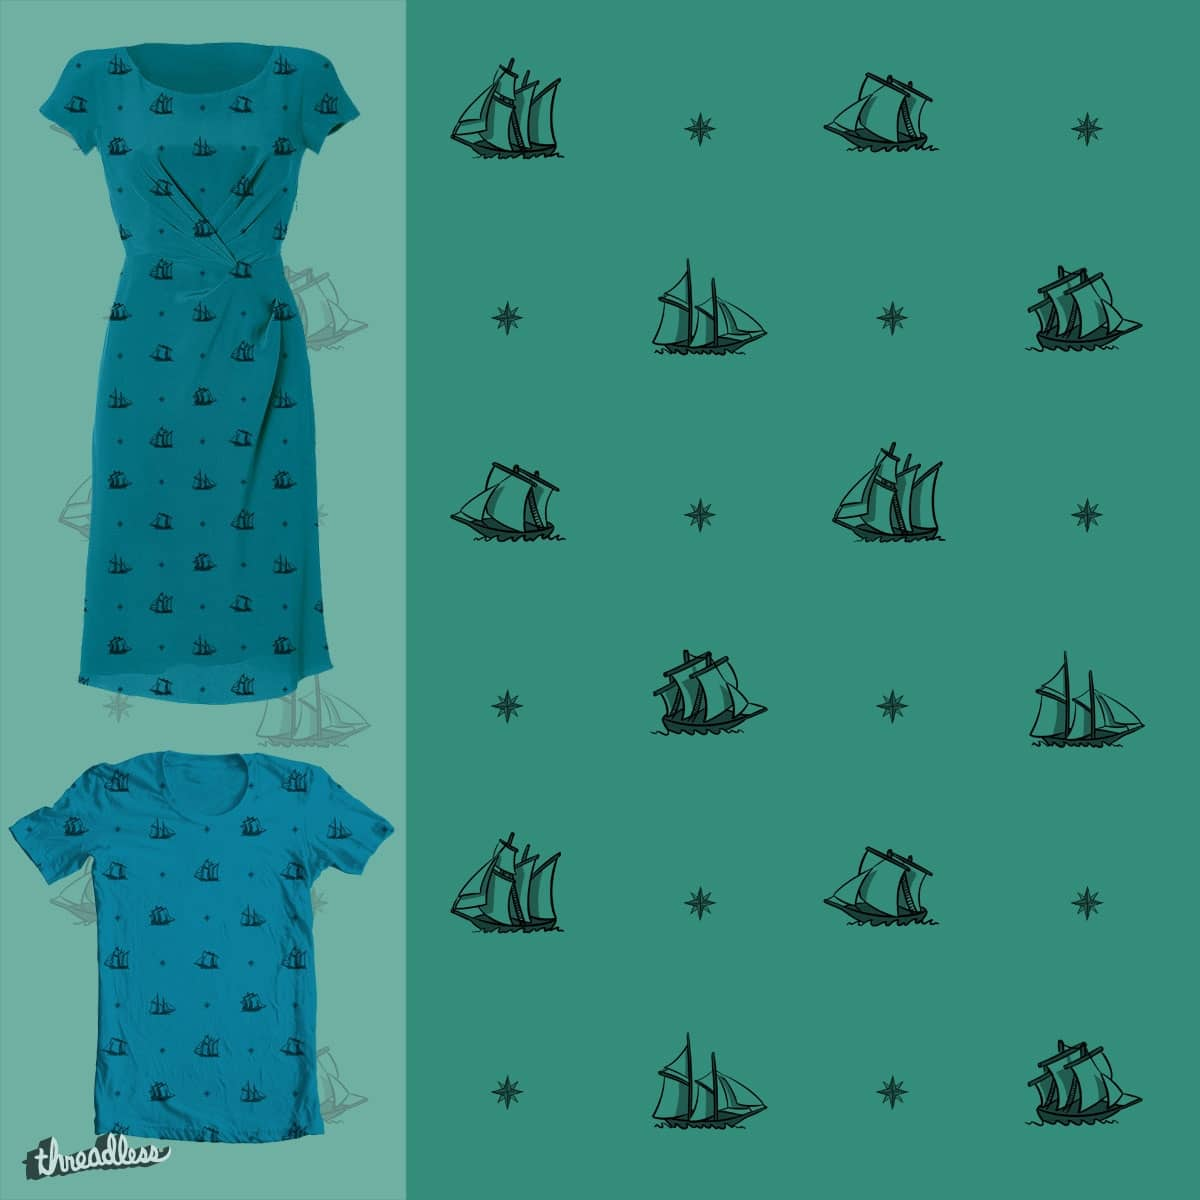 Ahoy by P0ckets on Threadless